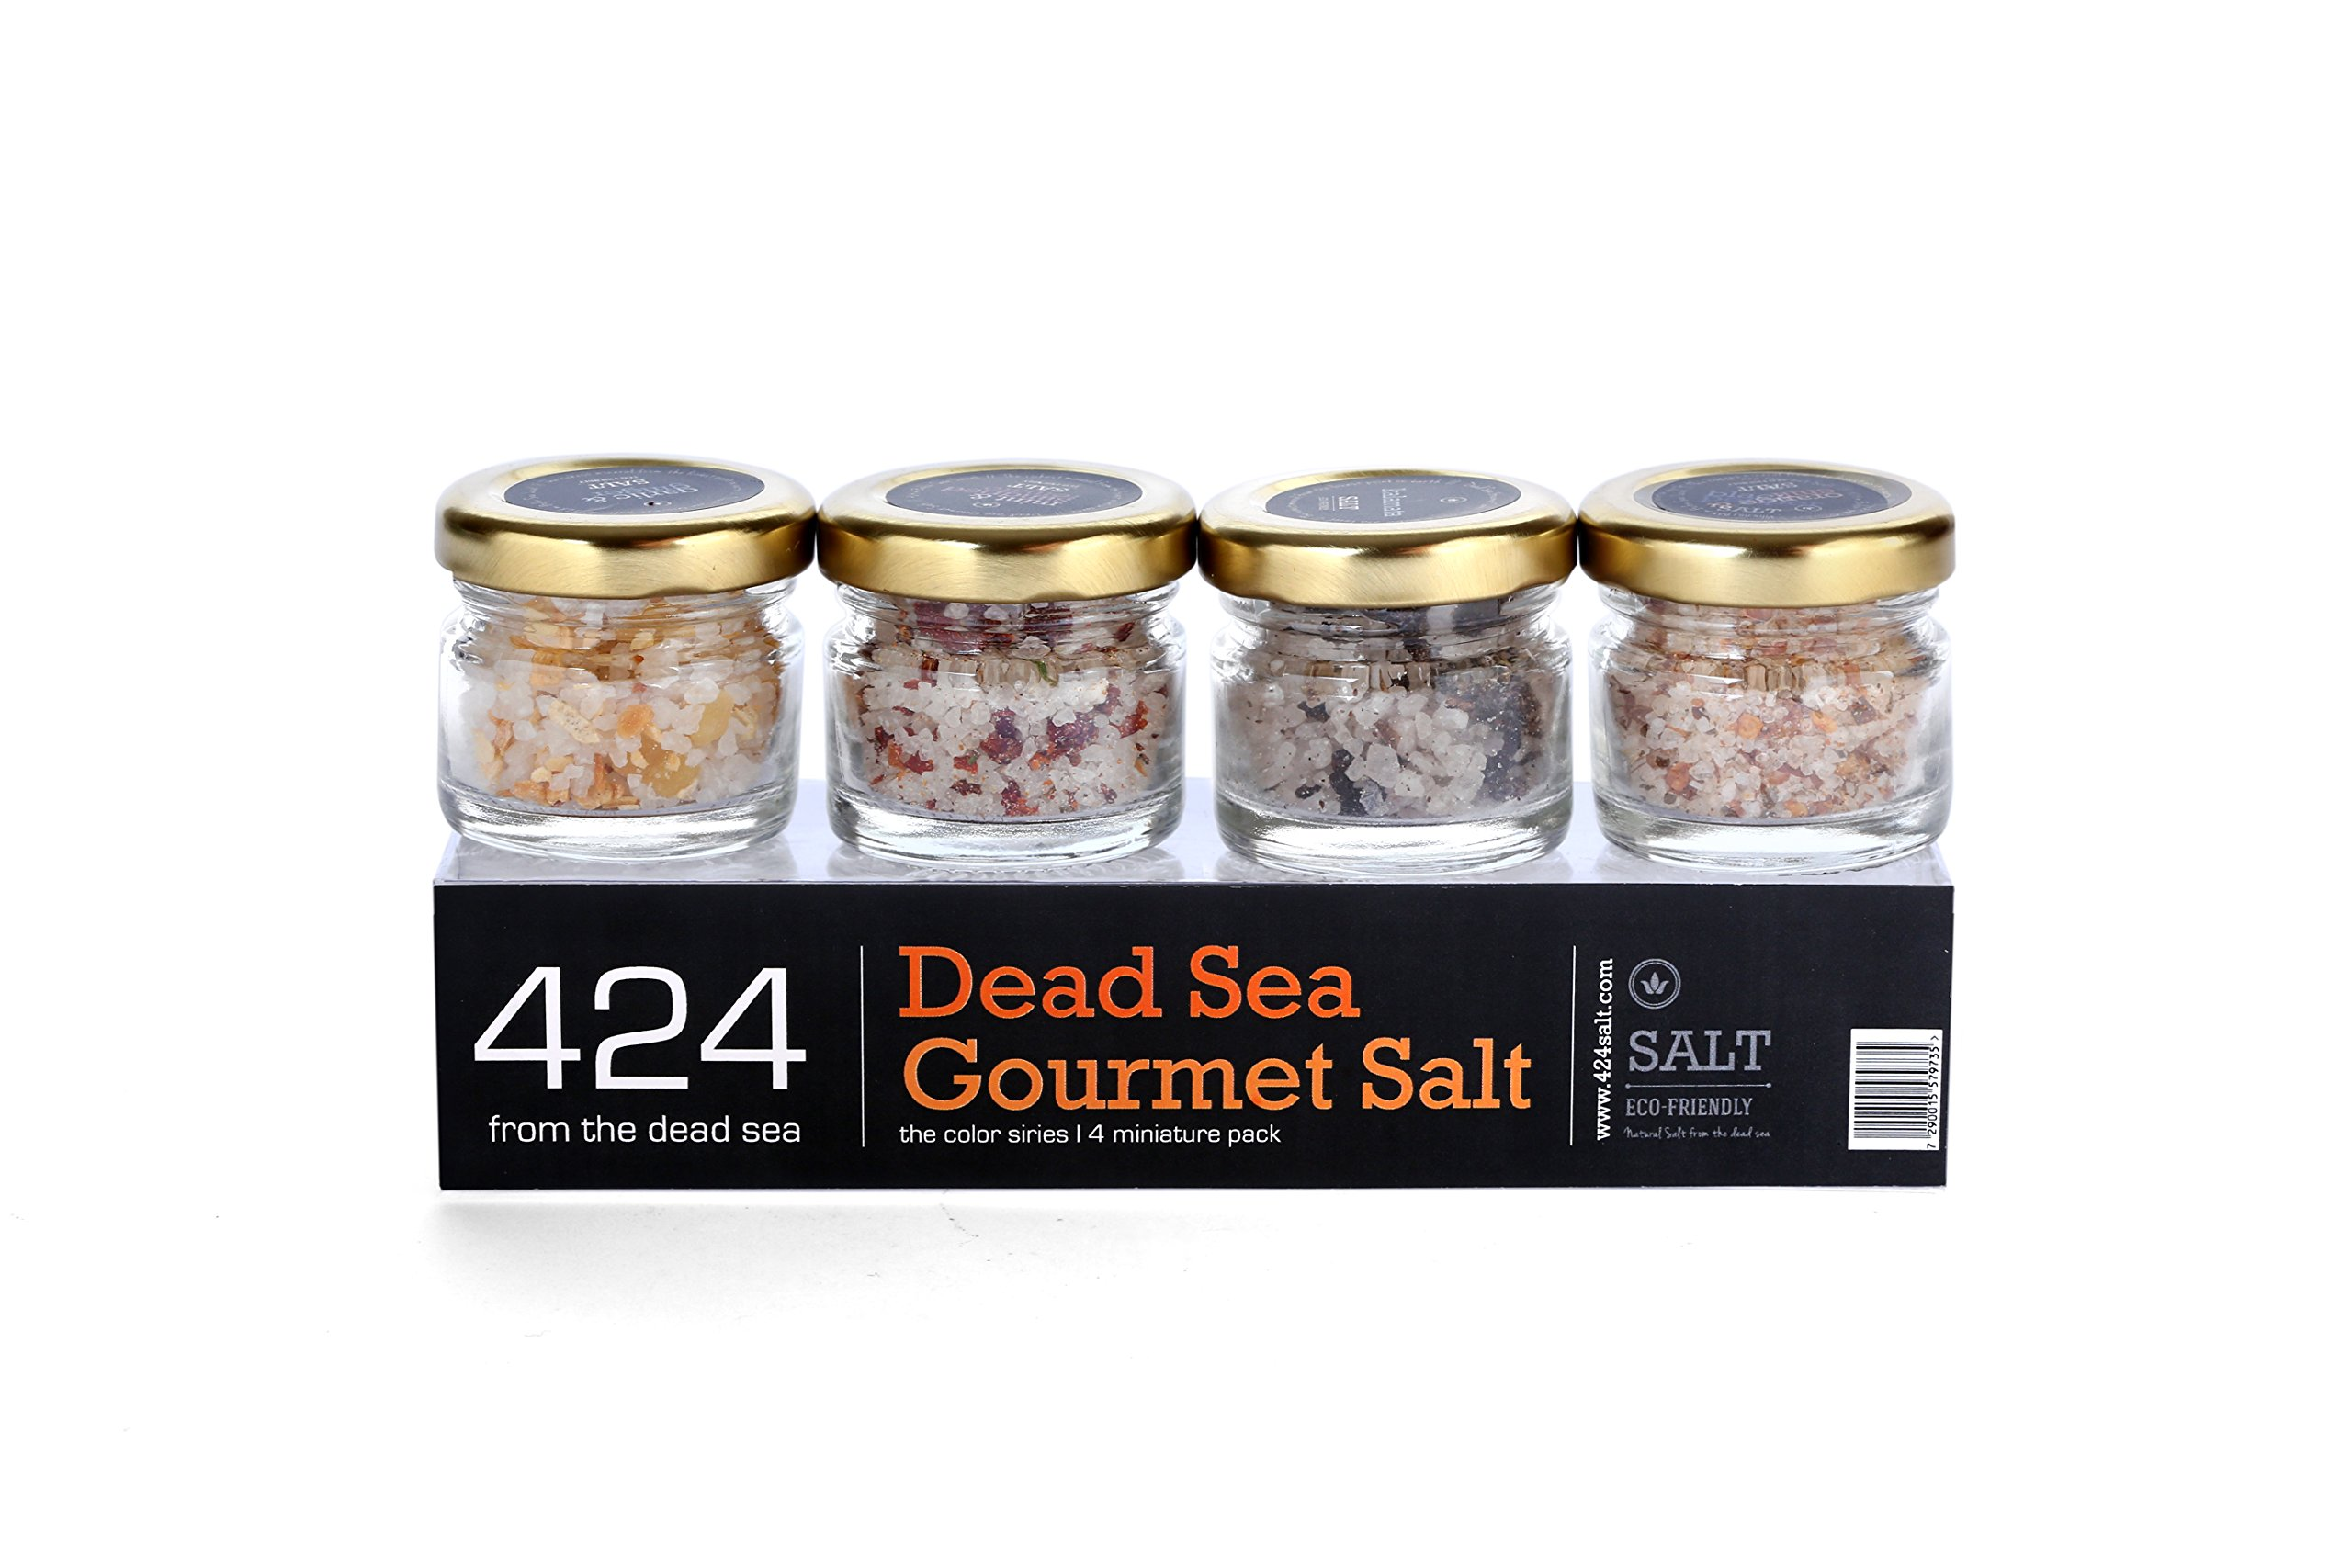 424 Natural Organic Dead Sea Salt – Chef Series Gift set - 4 Pack of Delicately Flavored Natural Dead Sea Salts for Gourmet Cooking and Seasoning - Premium Pure Kosher Sea Salt – Vegan - 4 x 0.88 oz.